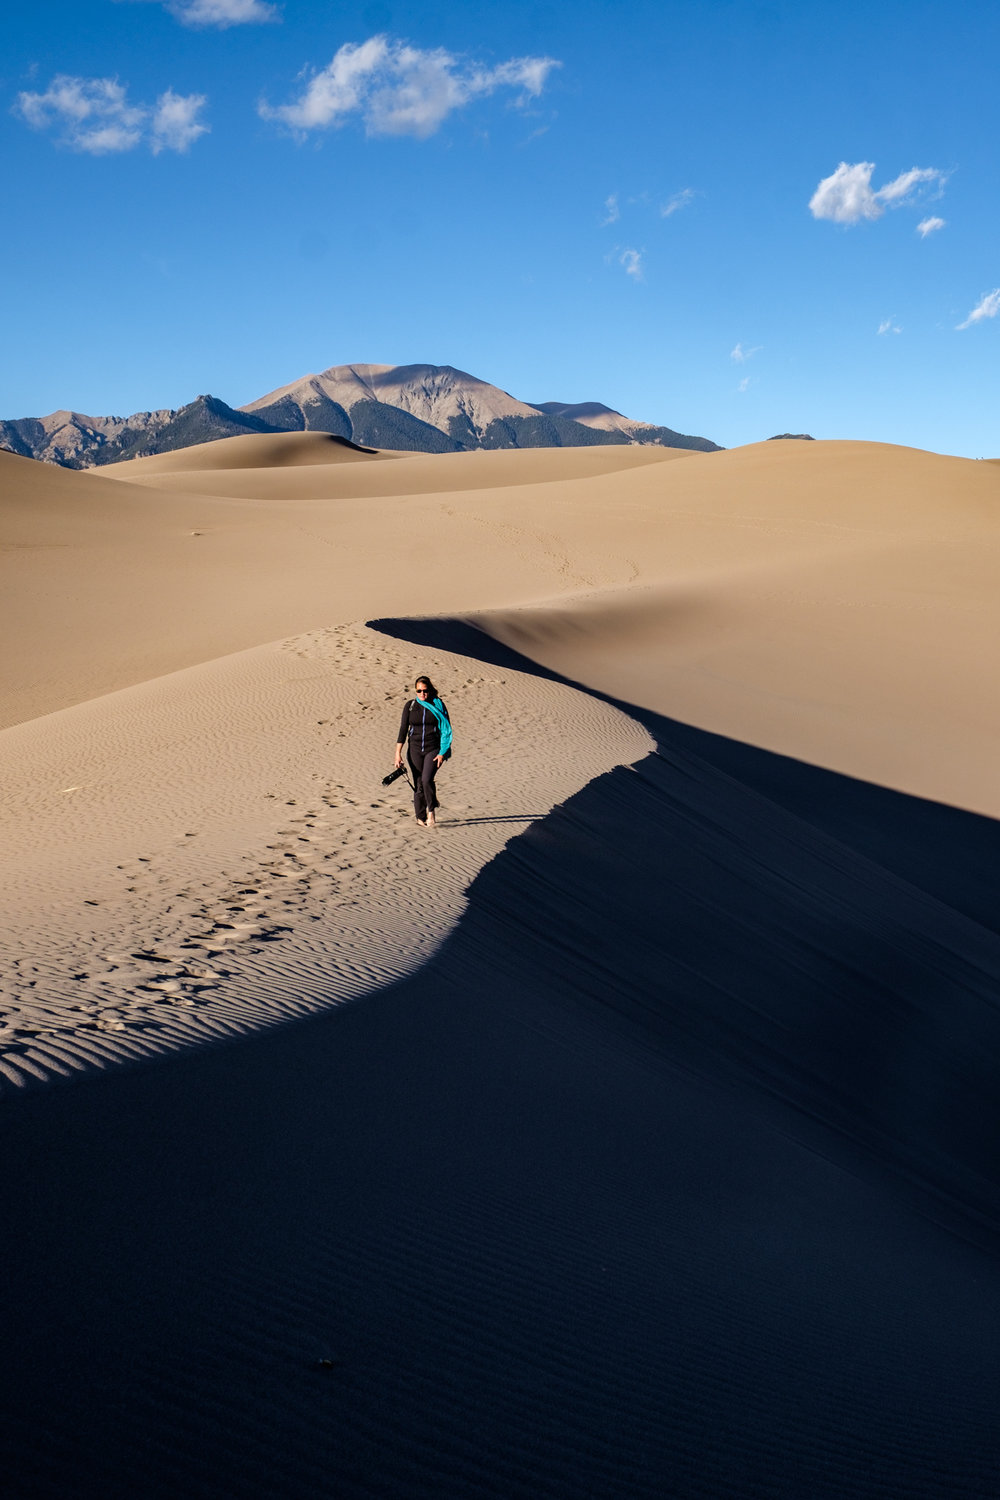 You could walk for days (weeks?) on the dunes.